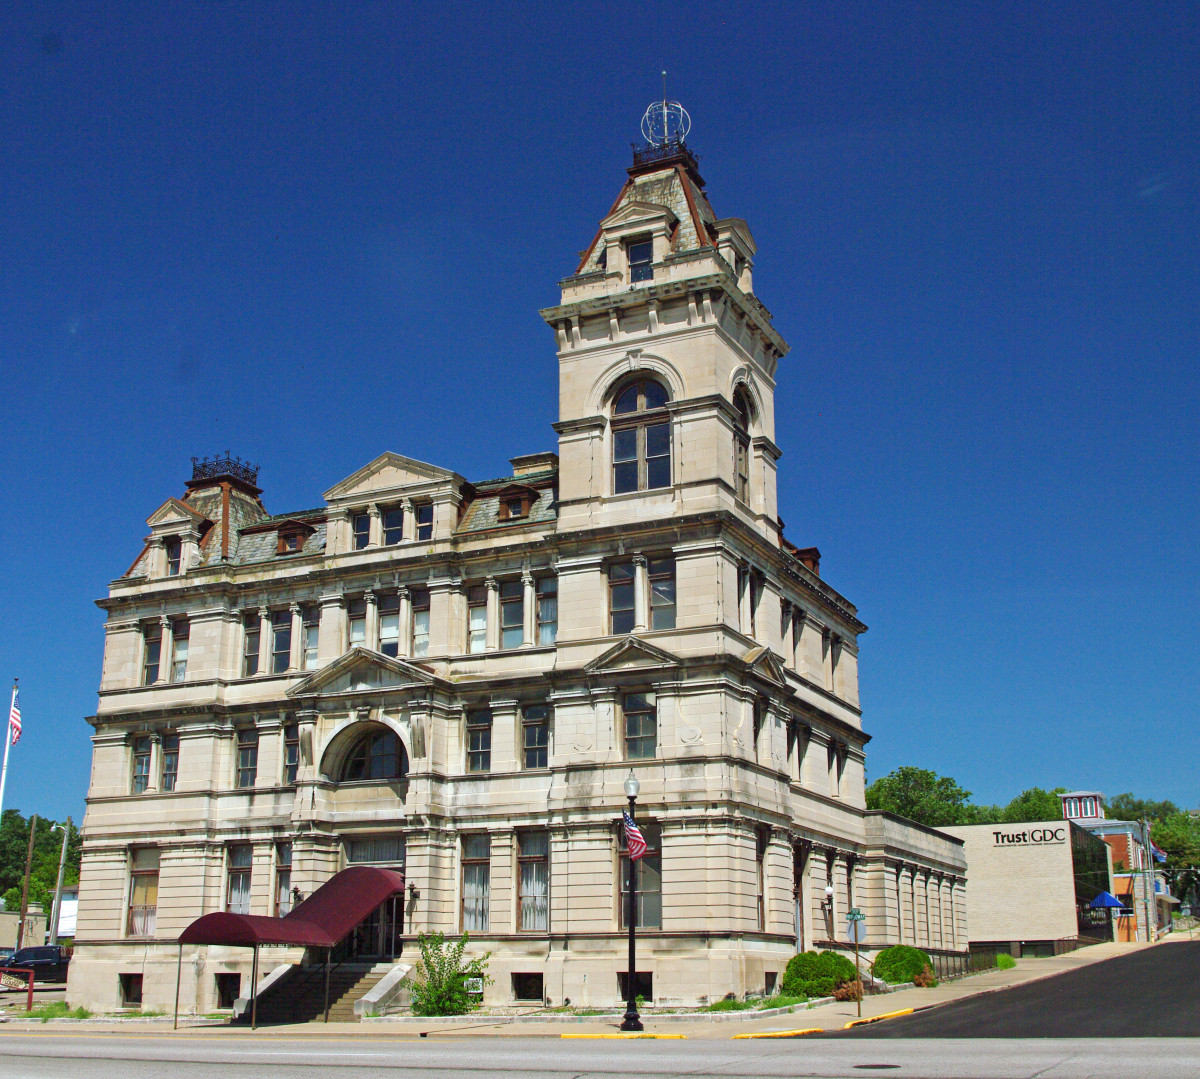 The Old Post Office and Federal Building